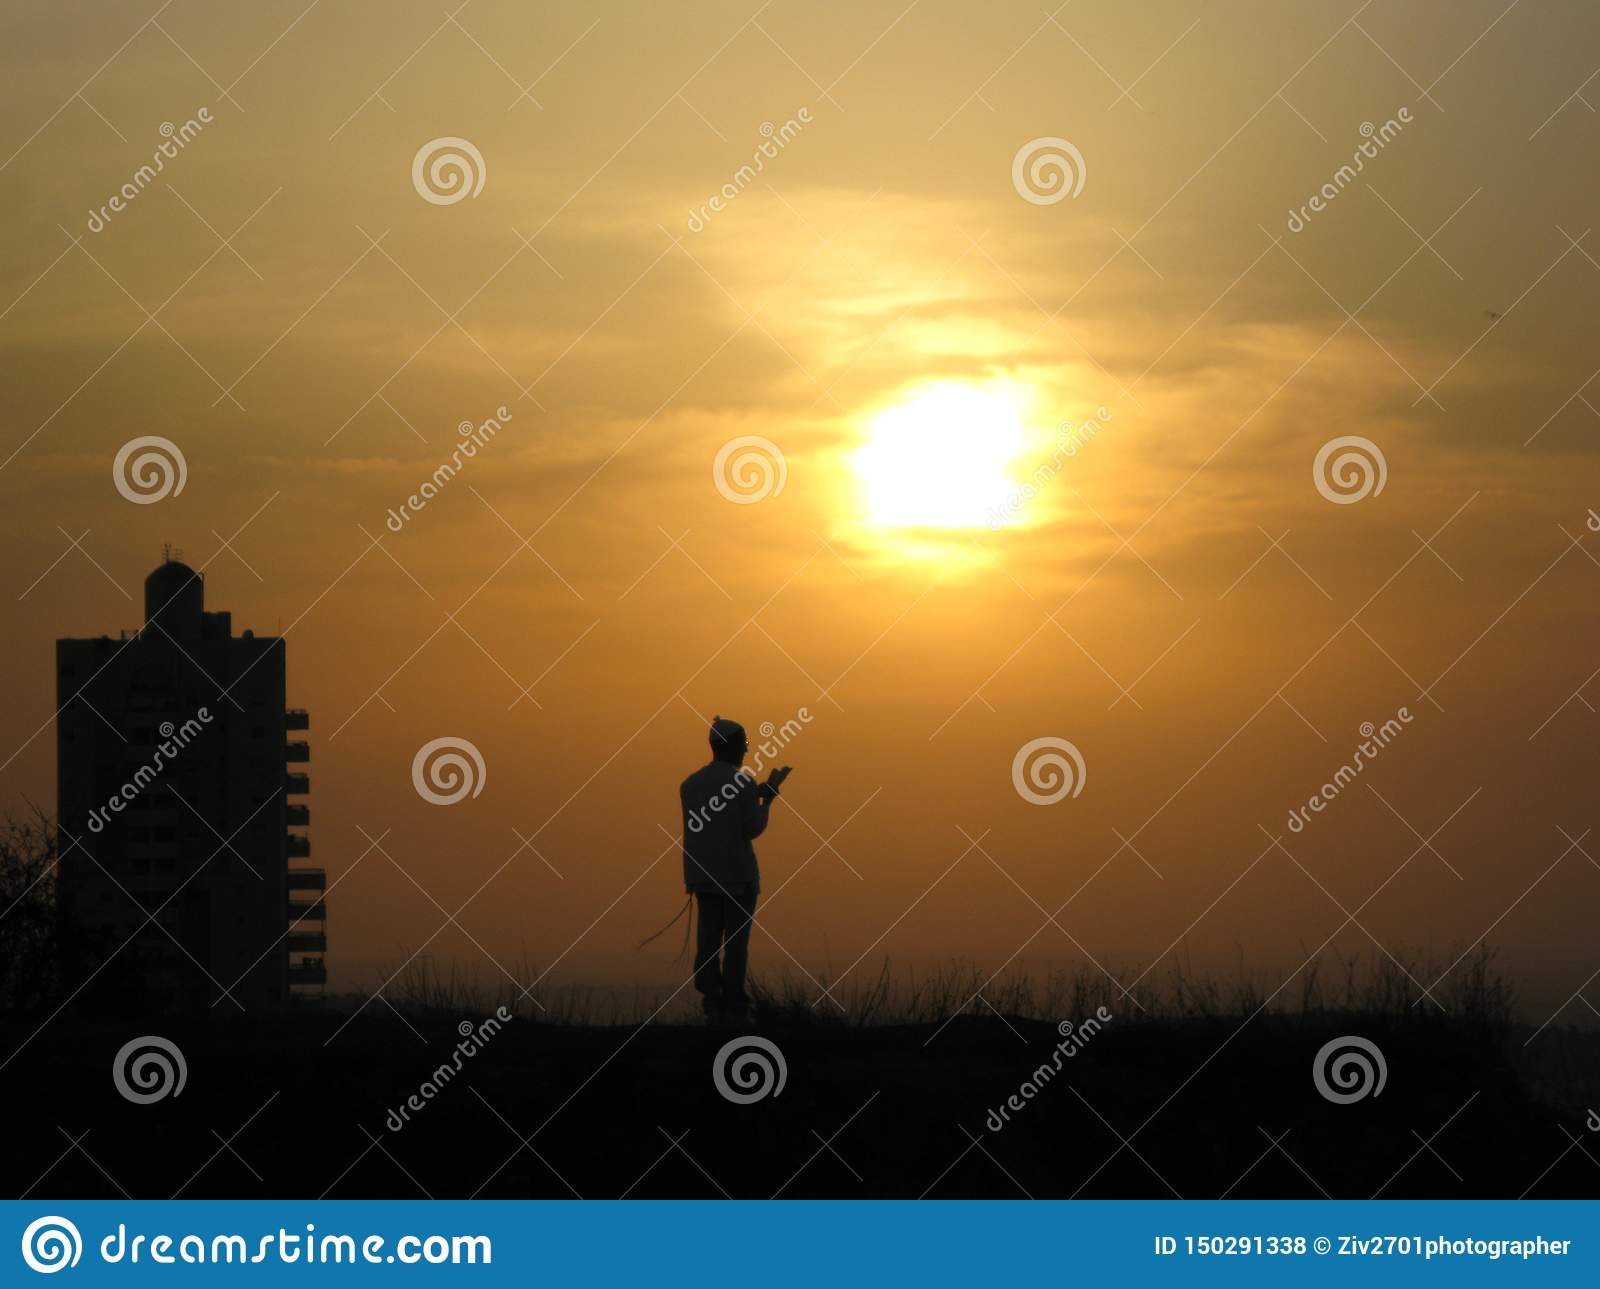 A religious person prays to God on a hill in front of the sun and sunset